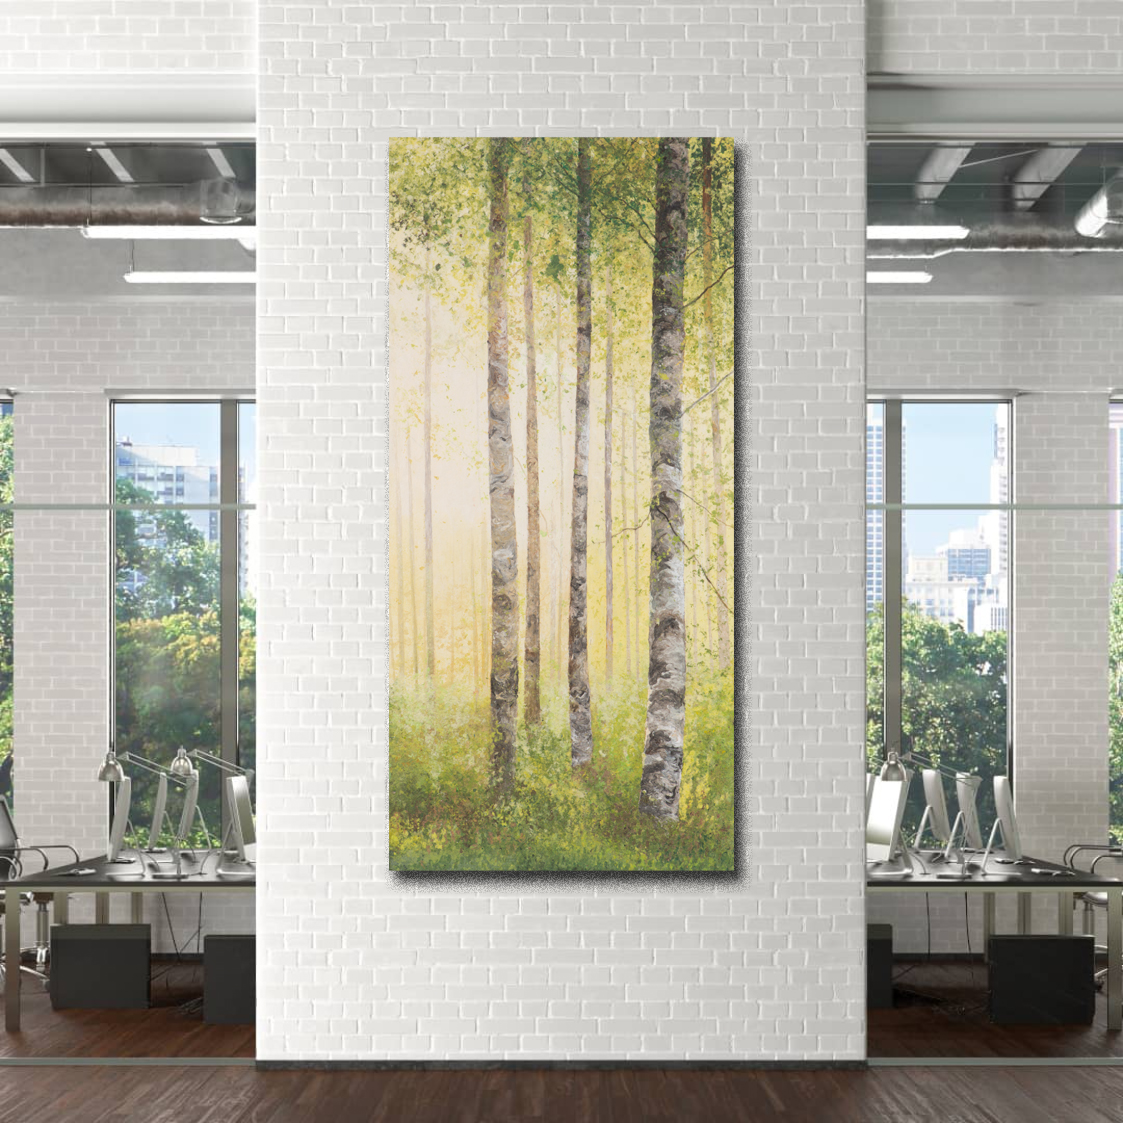 The benefits of adding nature-based artwork to the office environment.